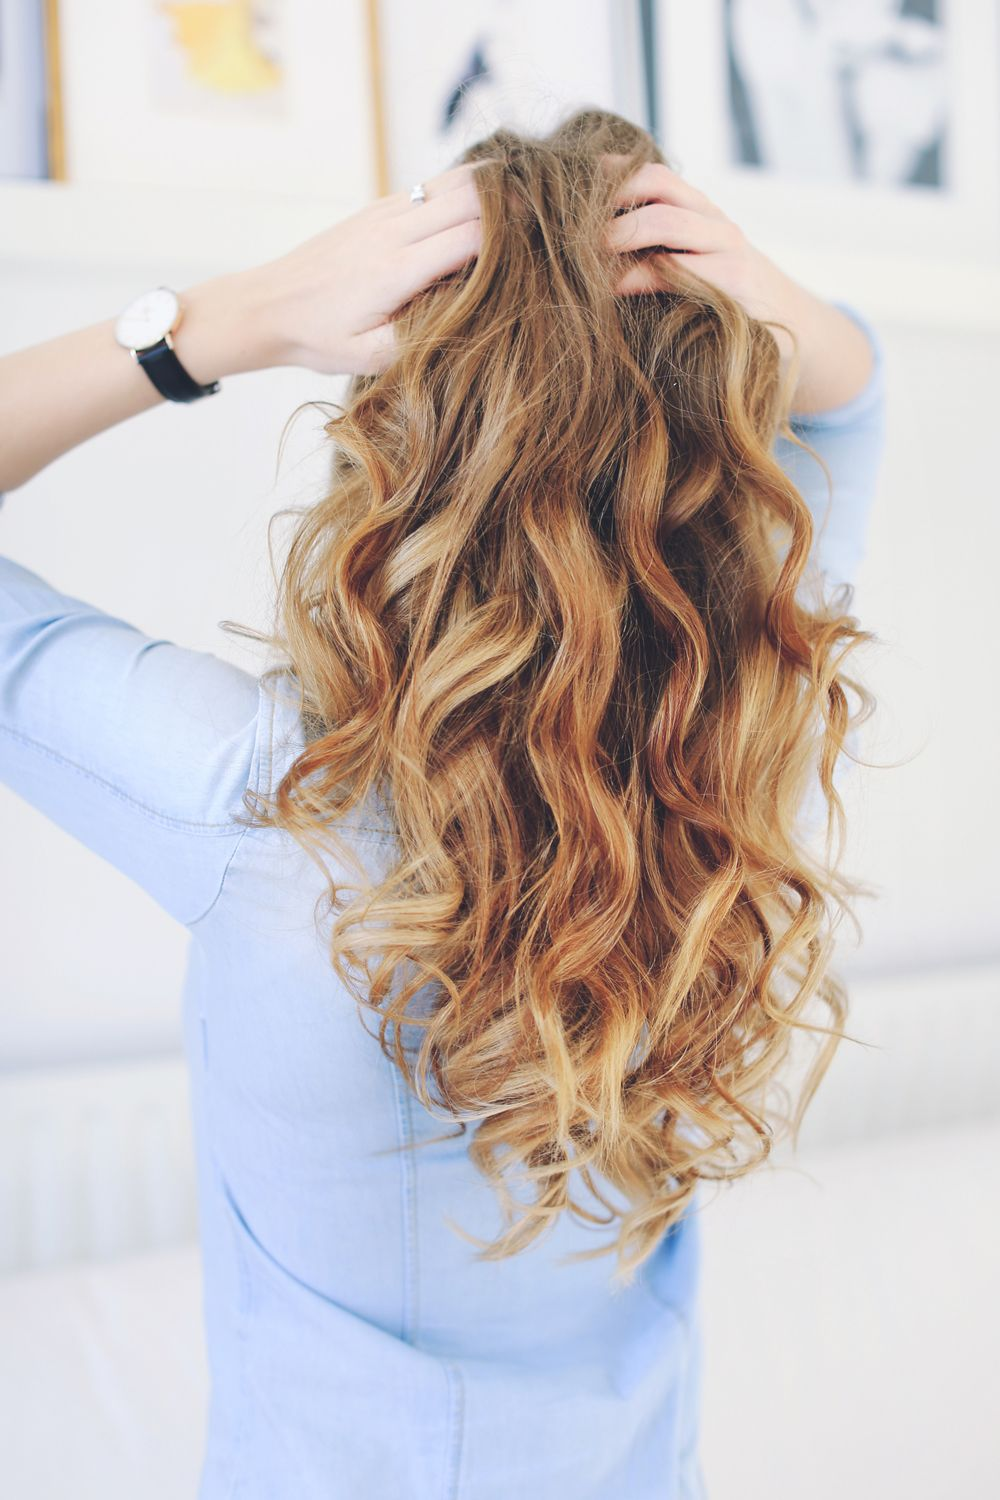 5 Tips On How To Make Your Curls Last Longer Luxy Hair Blog All